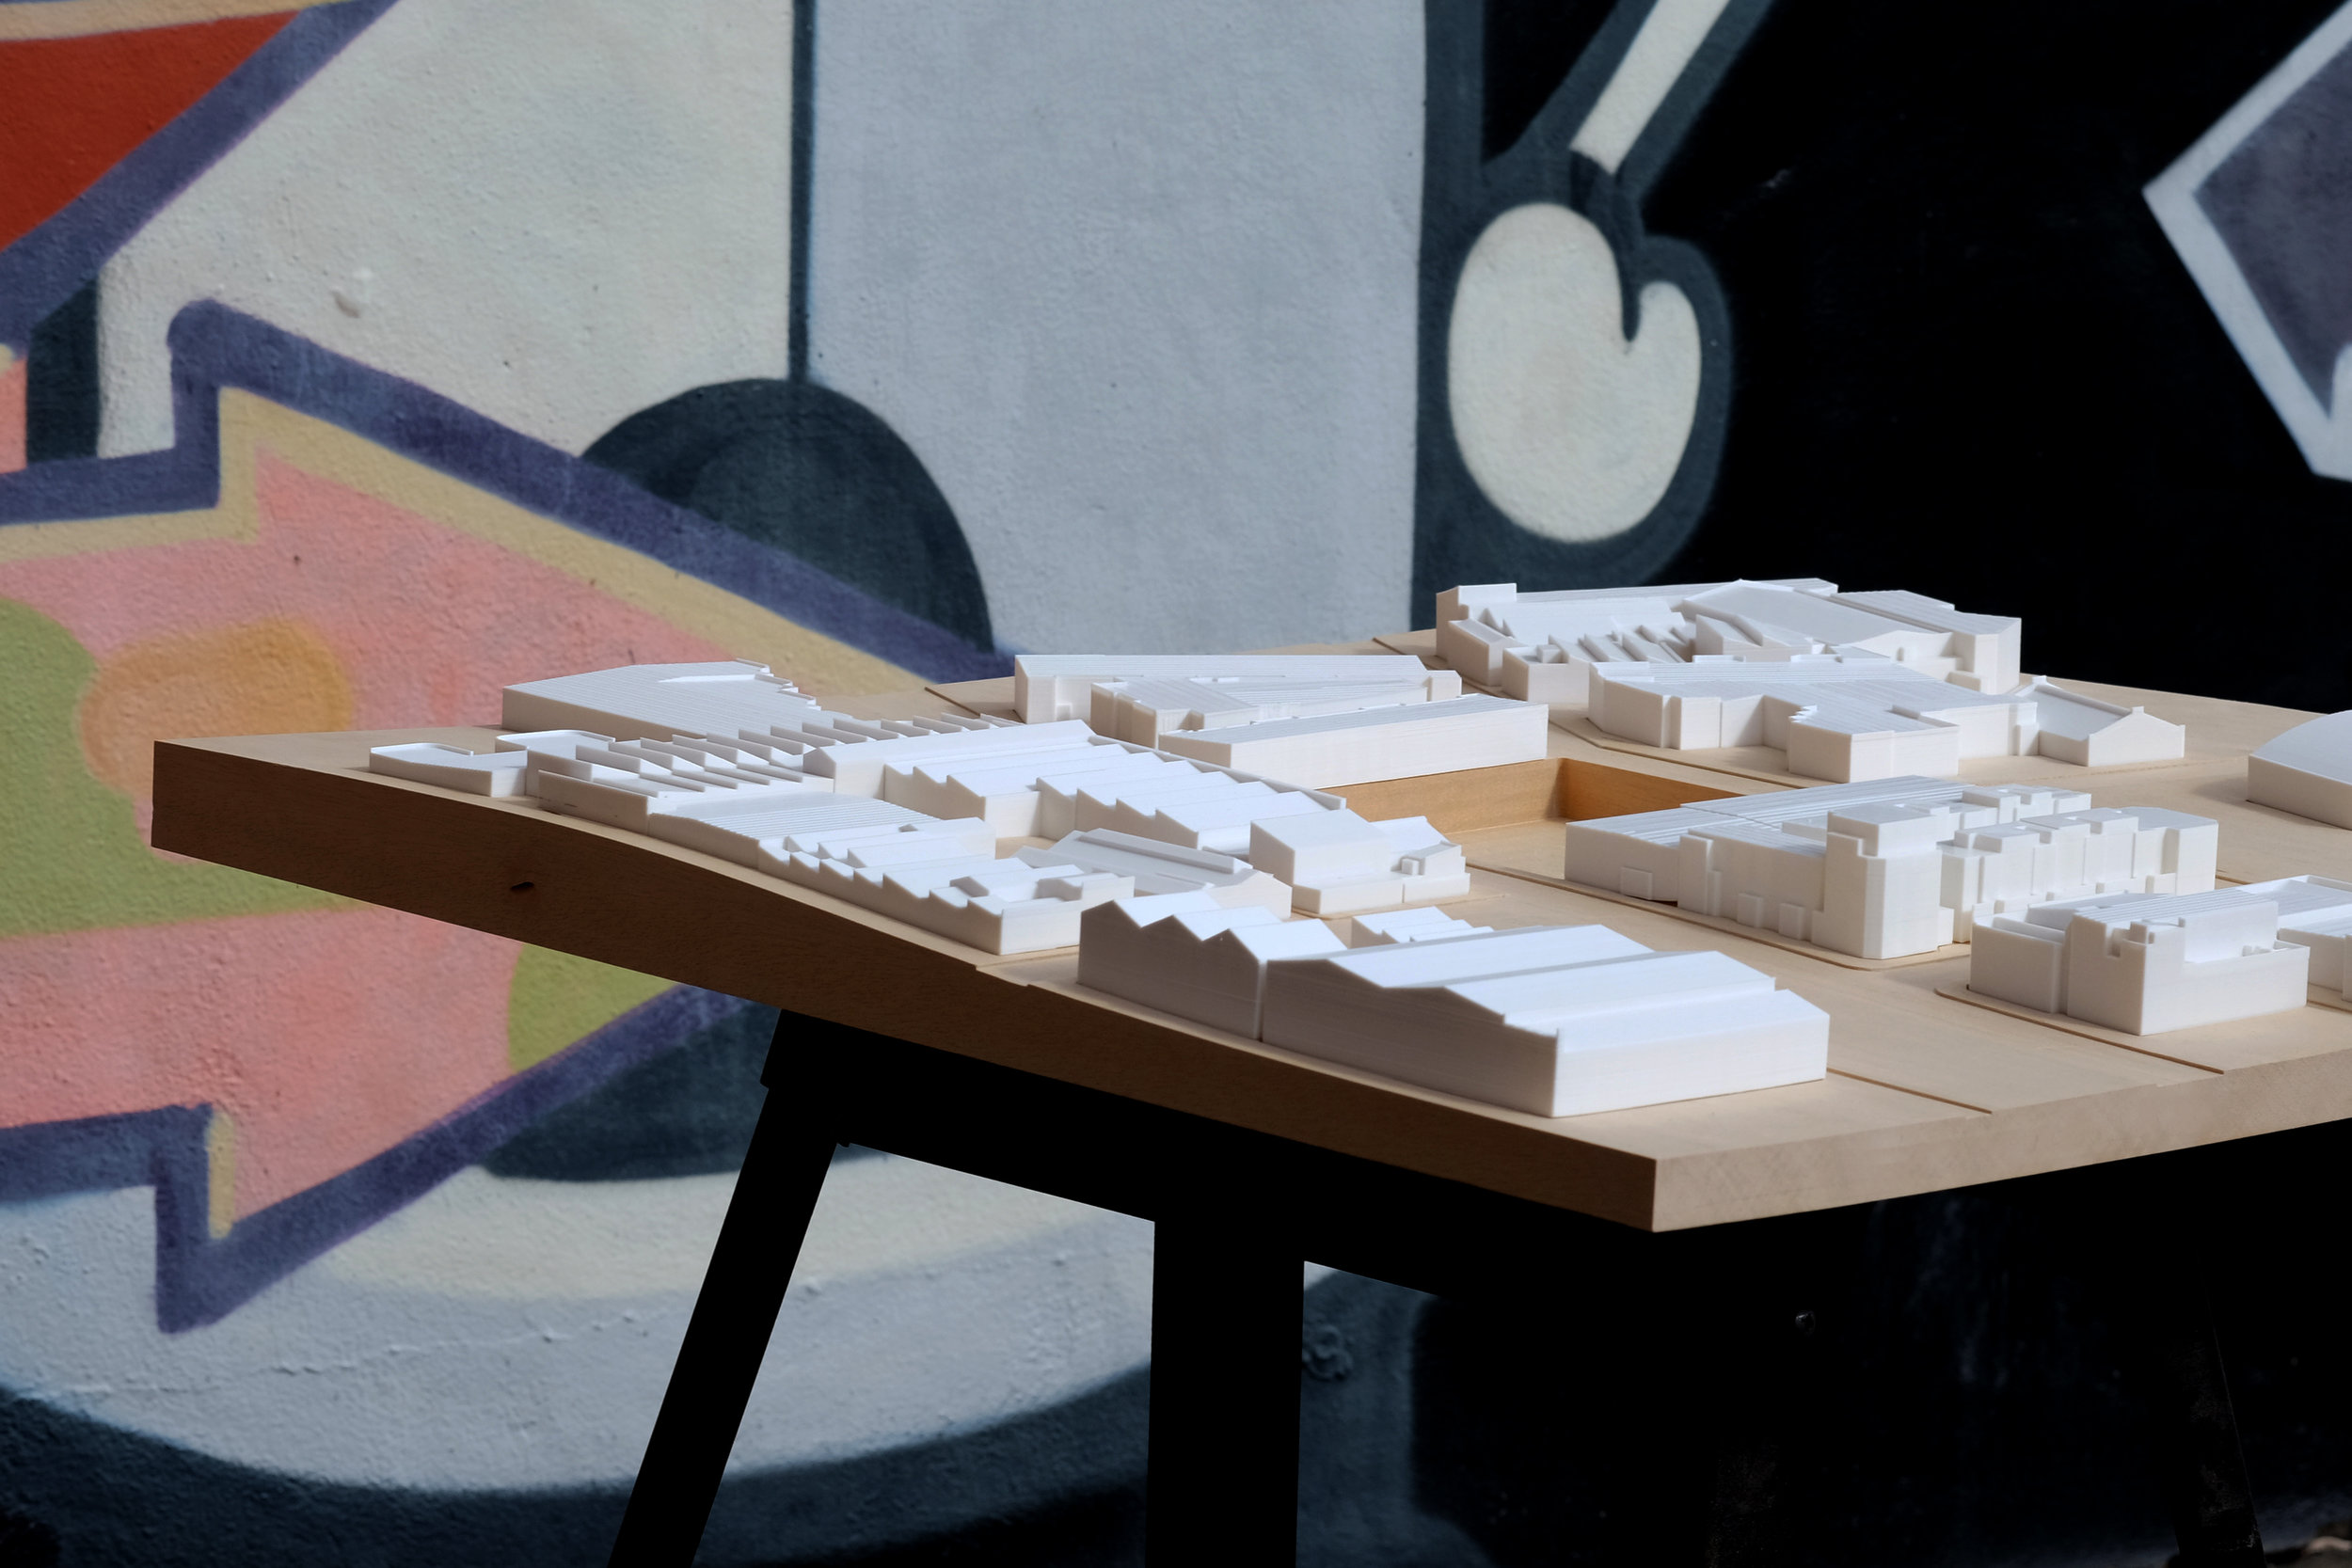 da_MODEL_CNC_architecture_timber_make_models_fabrication_sydney_CityofSydney.jpg